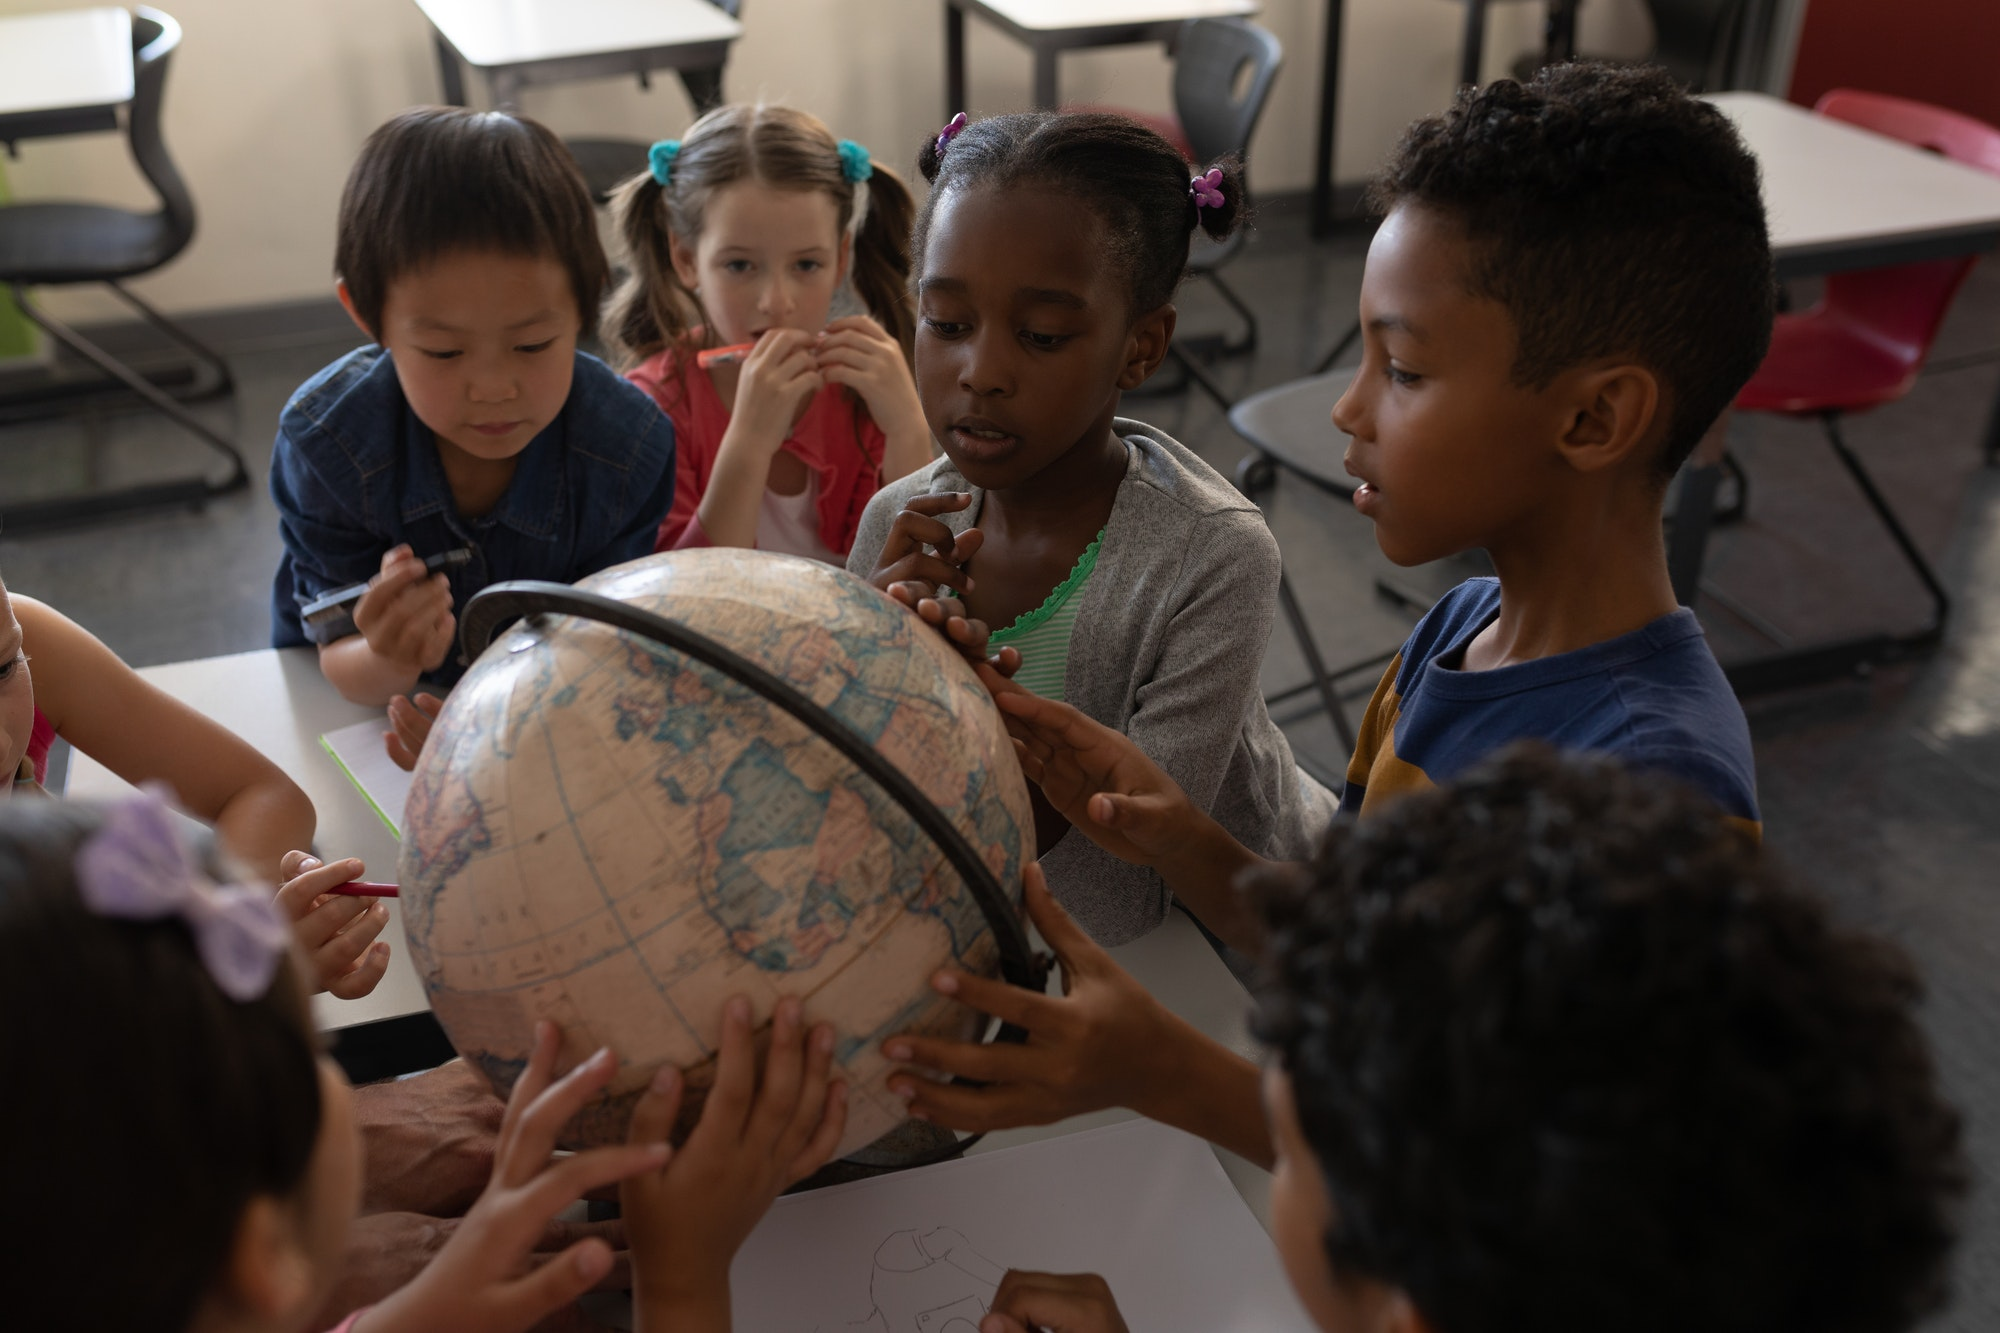 Group of kids studying a globe together in classroom